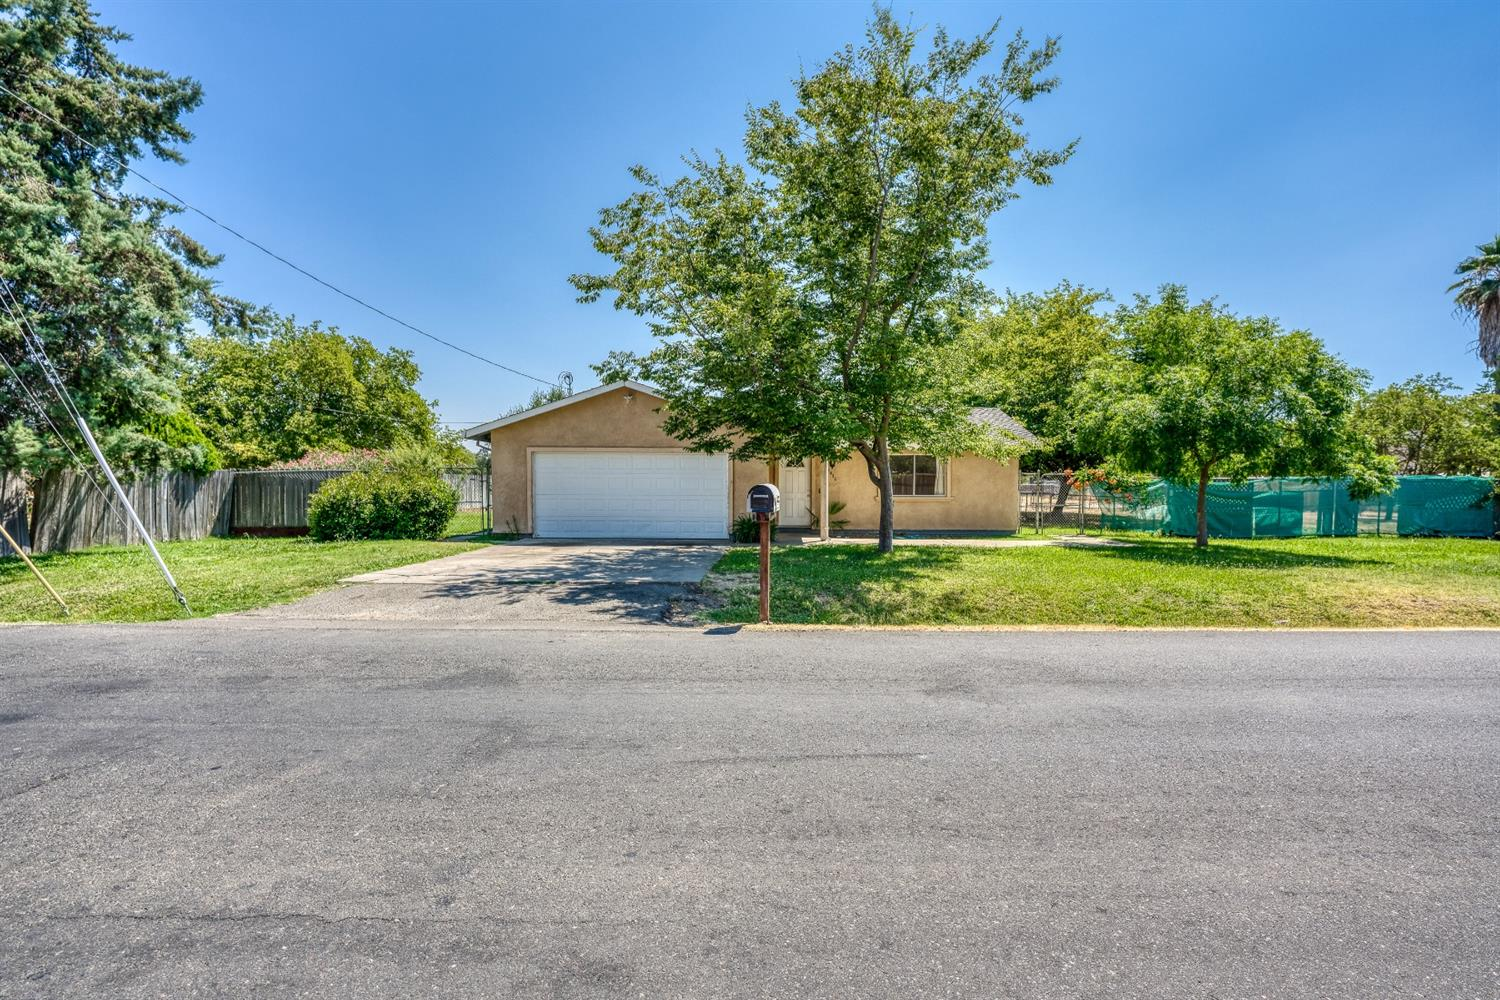 what a rare opportunity this is. 1488sq ft. home on a missive nearly 2.5 acre lot in a residential a